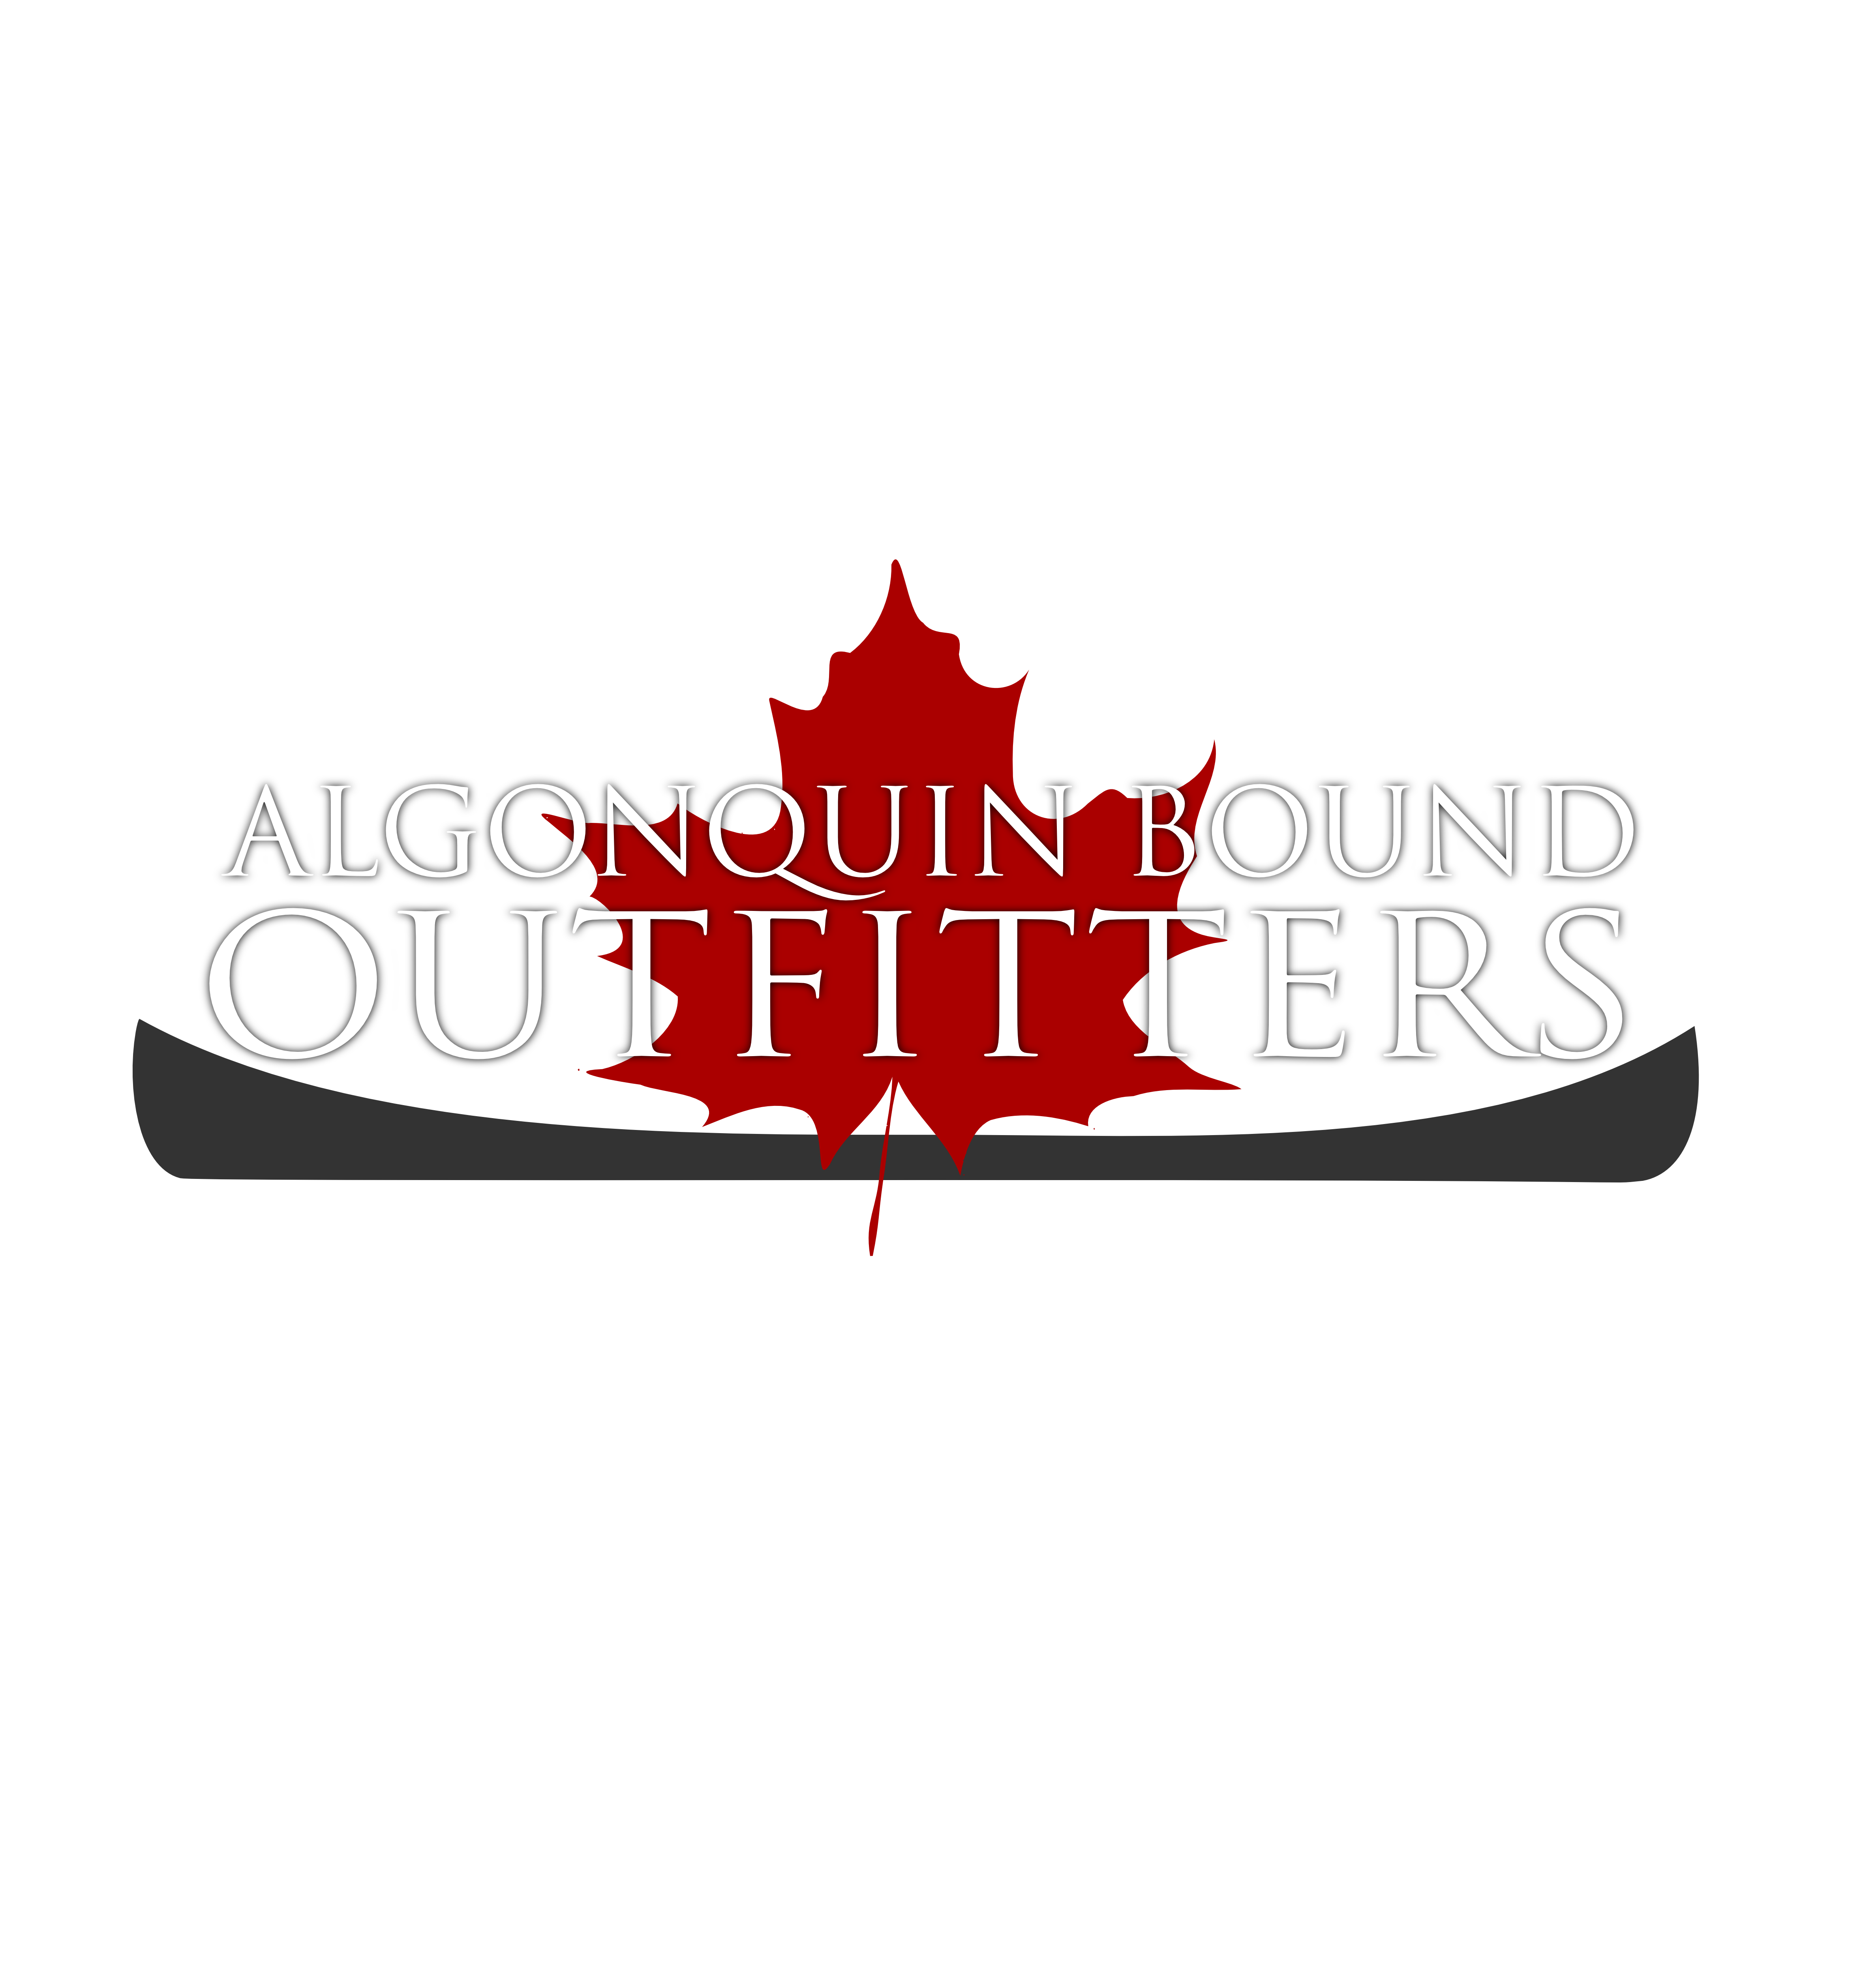 Logo Design by Andrew Bertram - Entry No. 21 in the Logo Design Contest Captivating Logo Design for Algonquin Bound Outfitters.